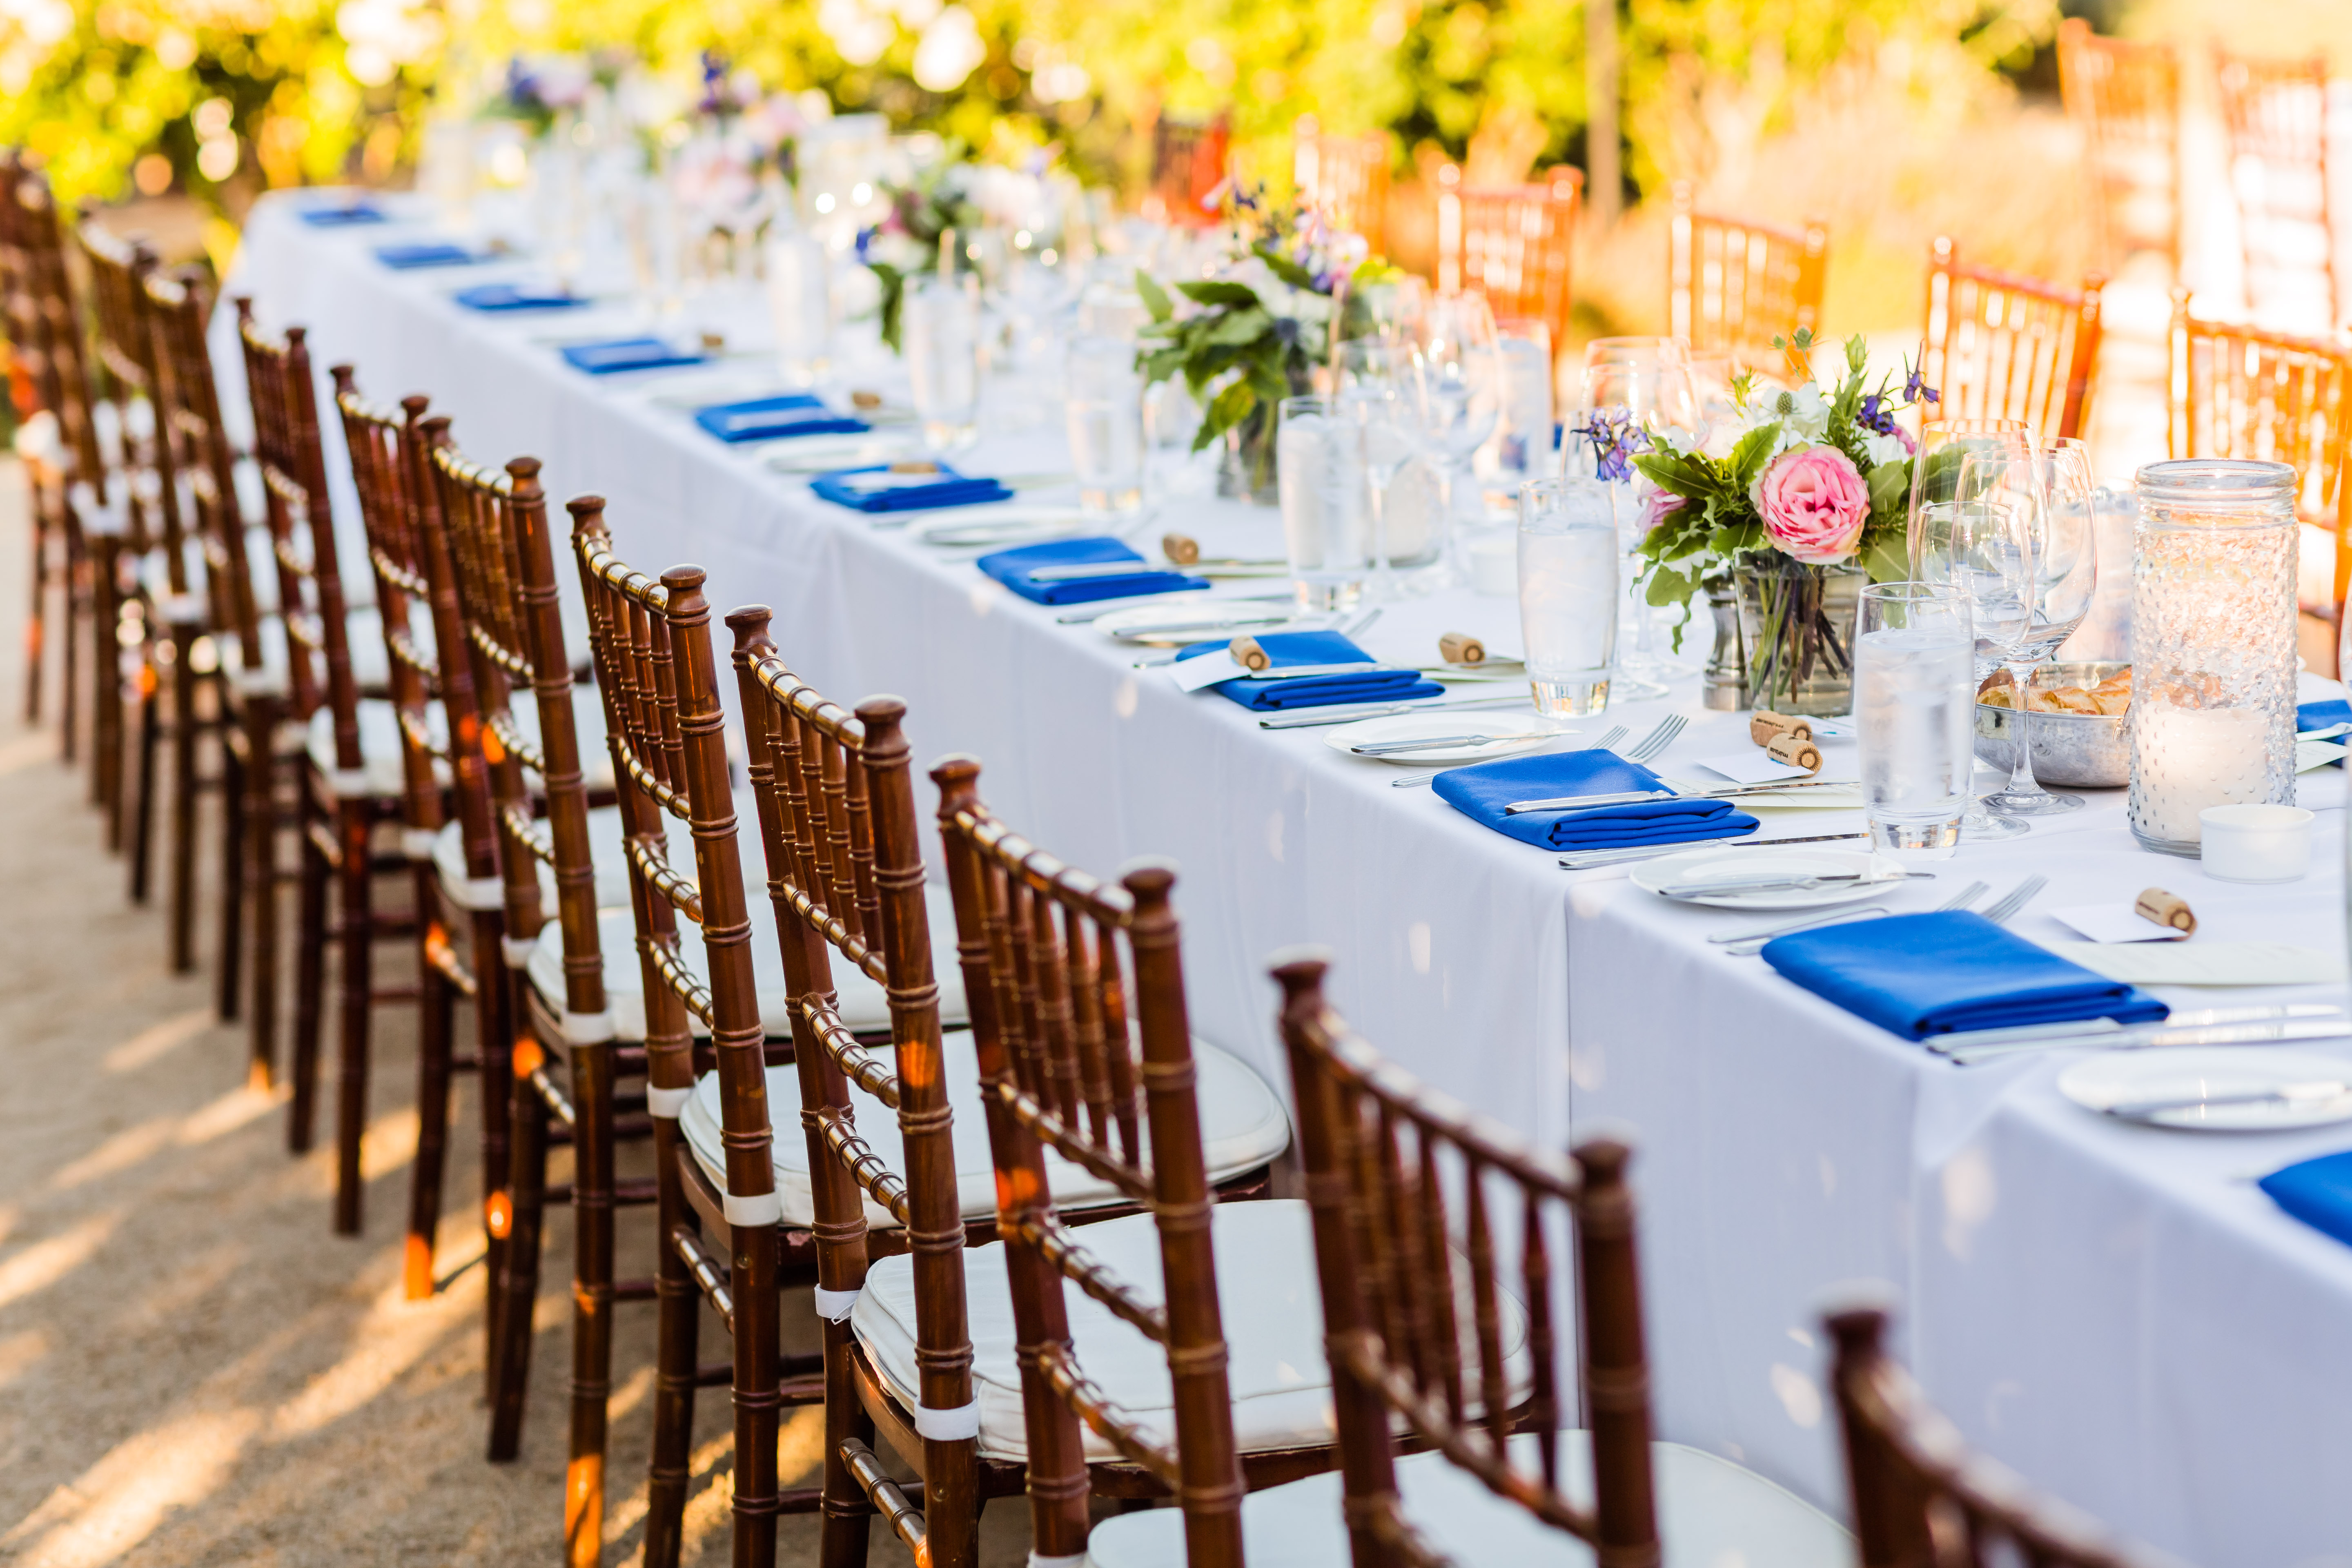 Barbara Llewellyn Catering and Event Planning - Barbara Llewellyn Catering and Event Planning